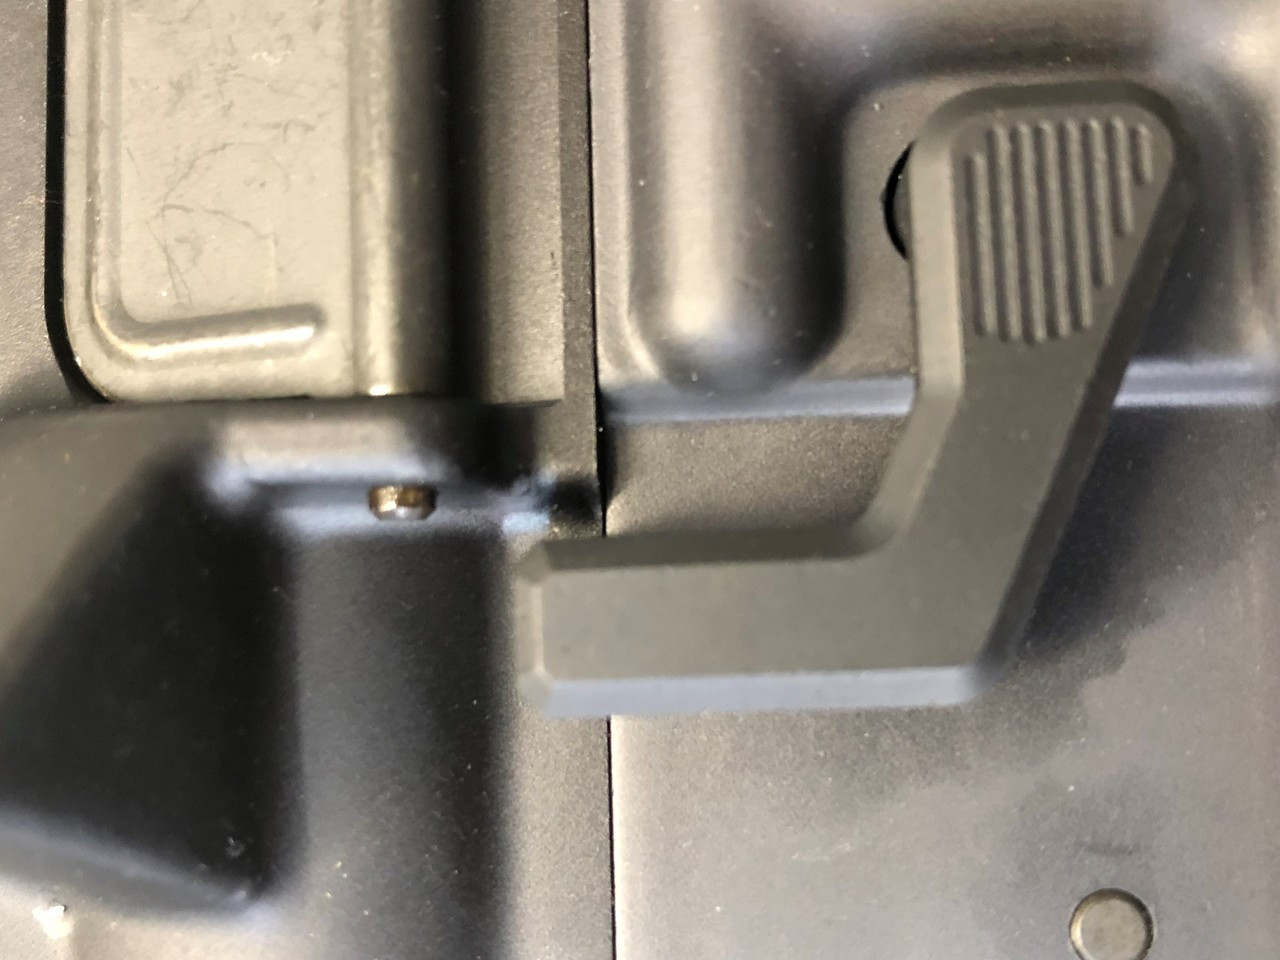 FNH FN15 Competition CALIFORNIA LEGAL - 5.56